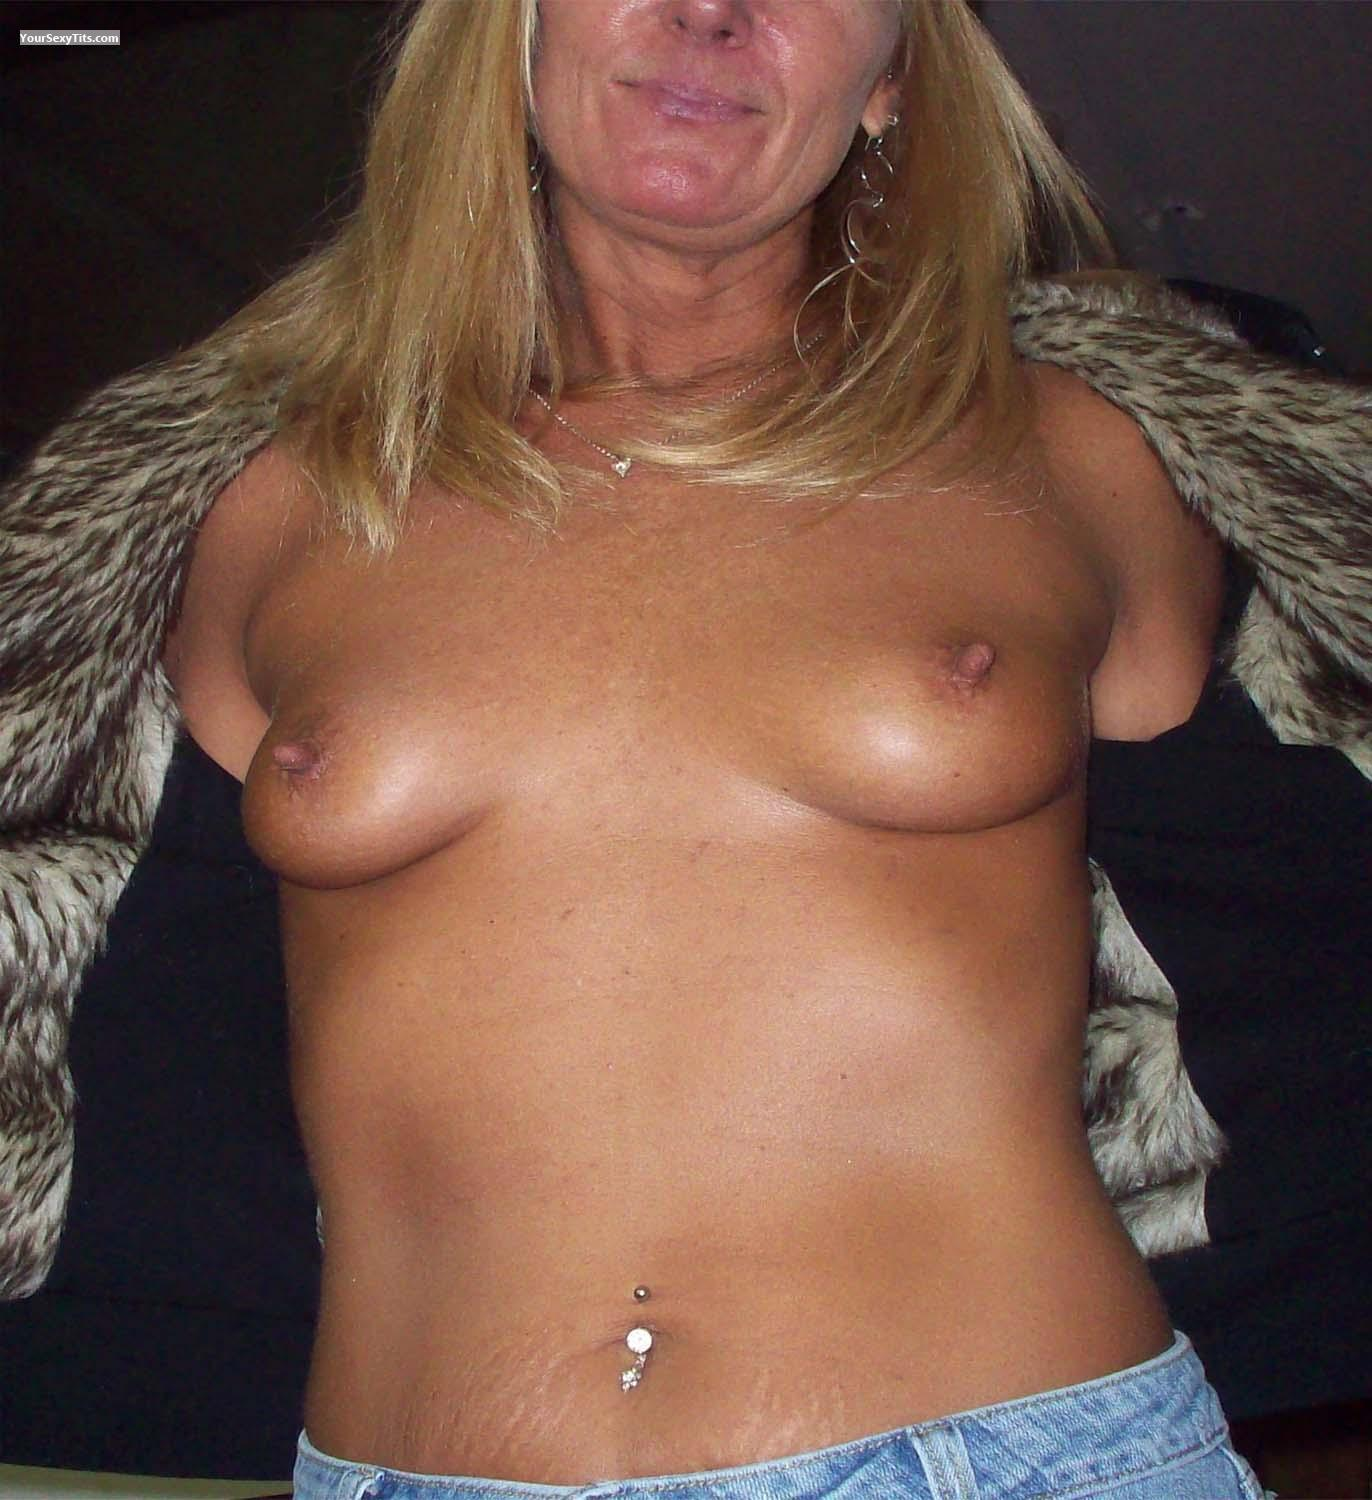 Tit Flash: Small Tits - TattooedSlut from Canada